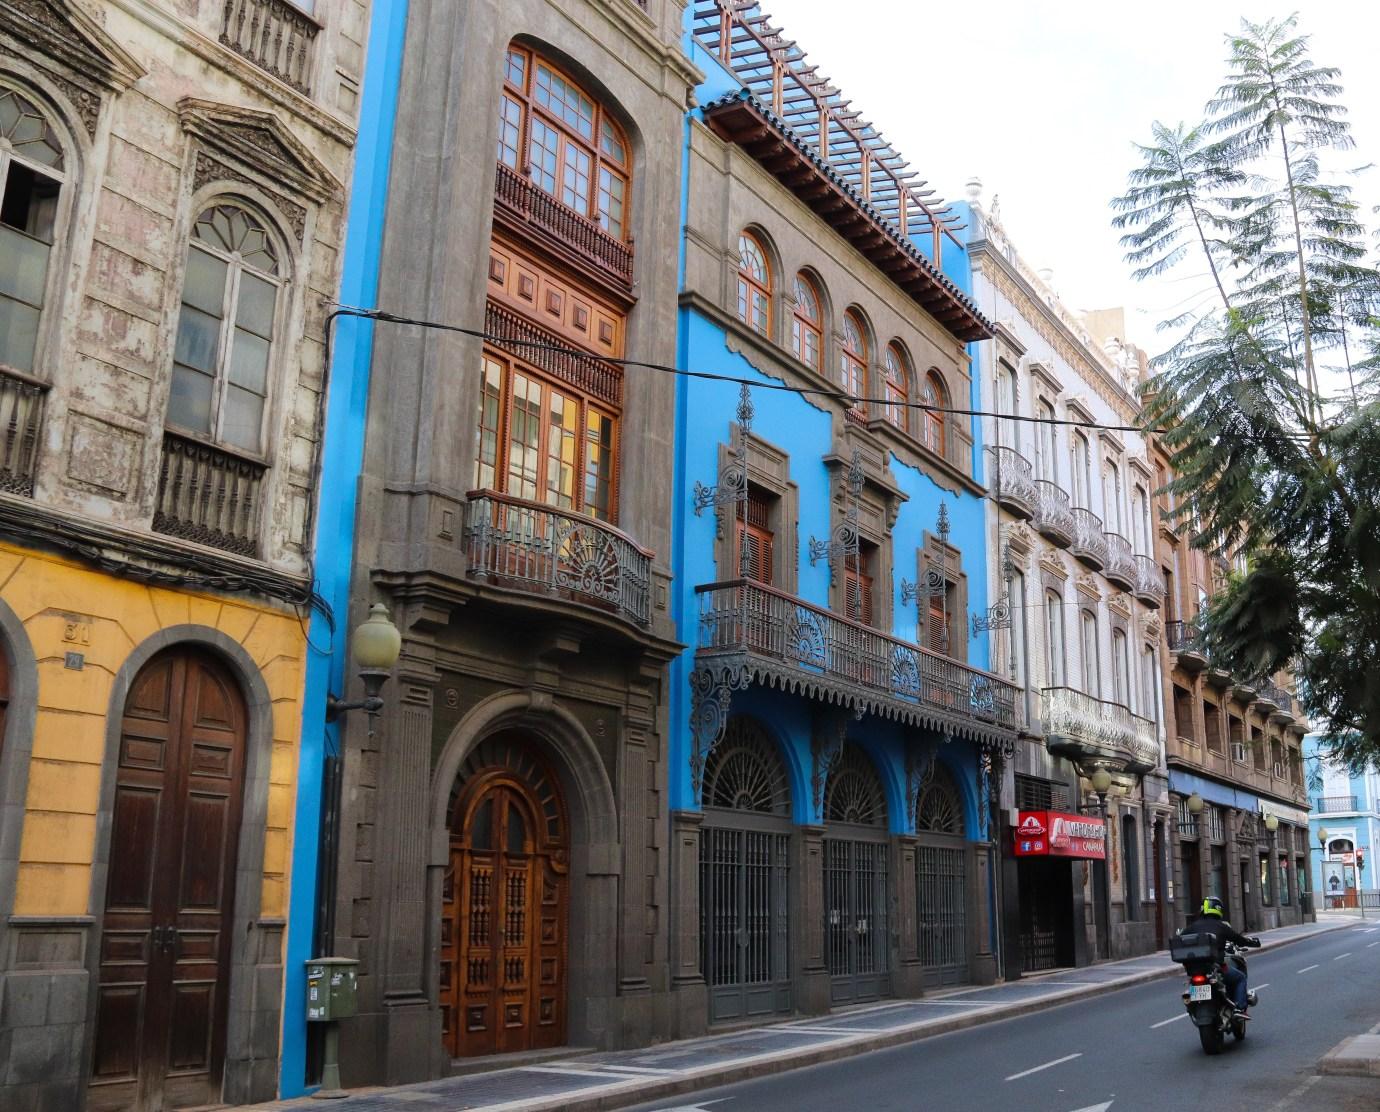 Beautifully decorated building in Tirana. Painted in bright colours with beautiful iron blaconys. Las Palmas de Gran Canaria.